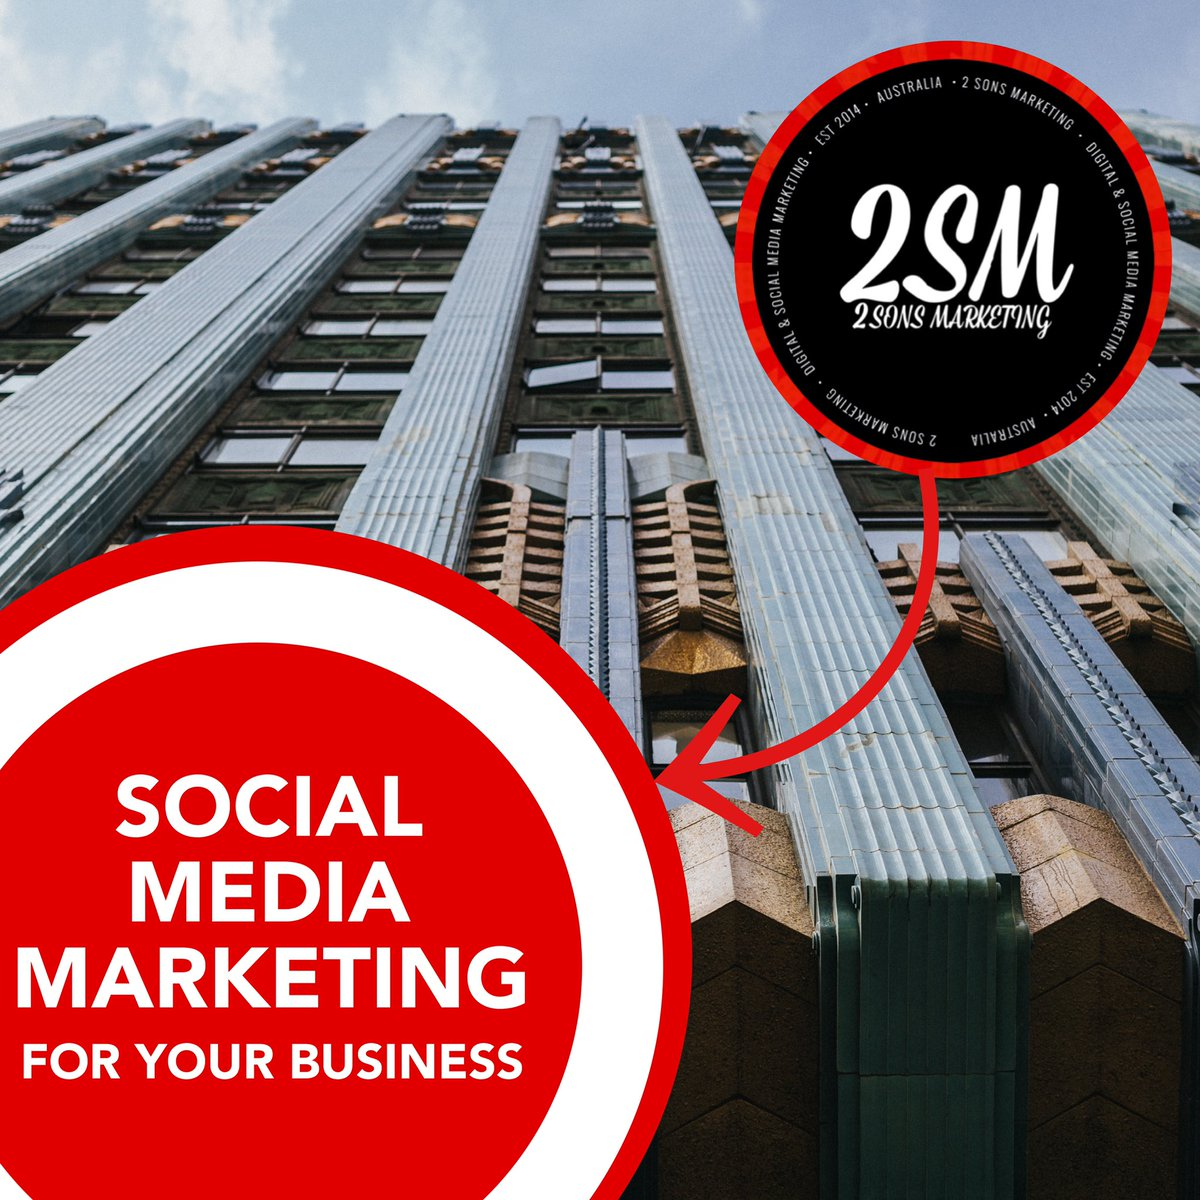 We're here for you. #socialMediaforbusiness #businessmarketing #socialmediaagency #sydneysocialmedia #sydneybusinesspic.twitter.com/693EwPth64